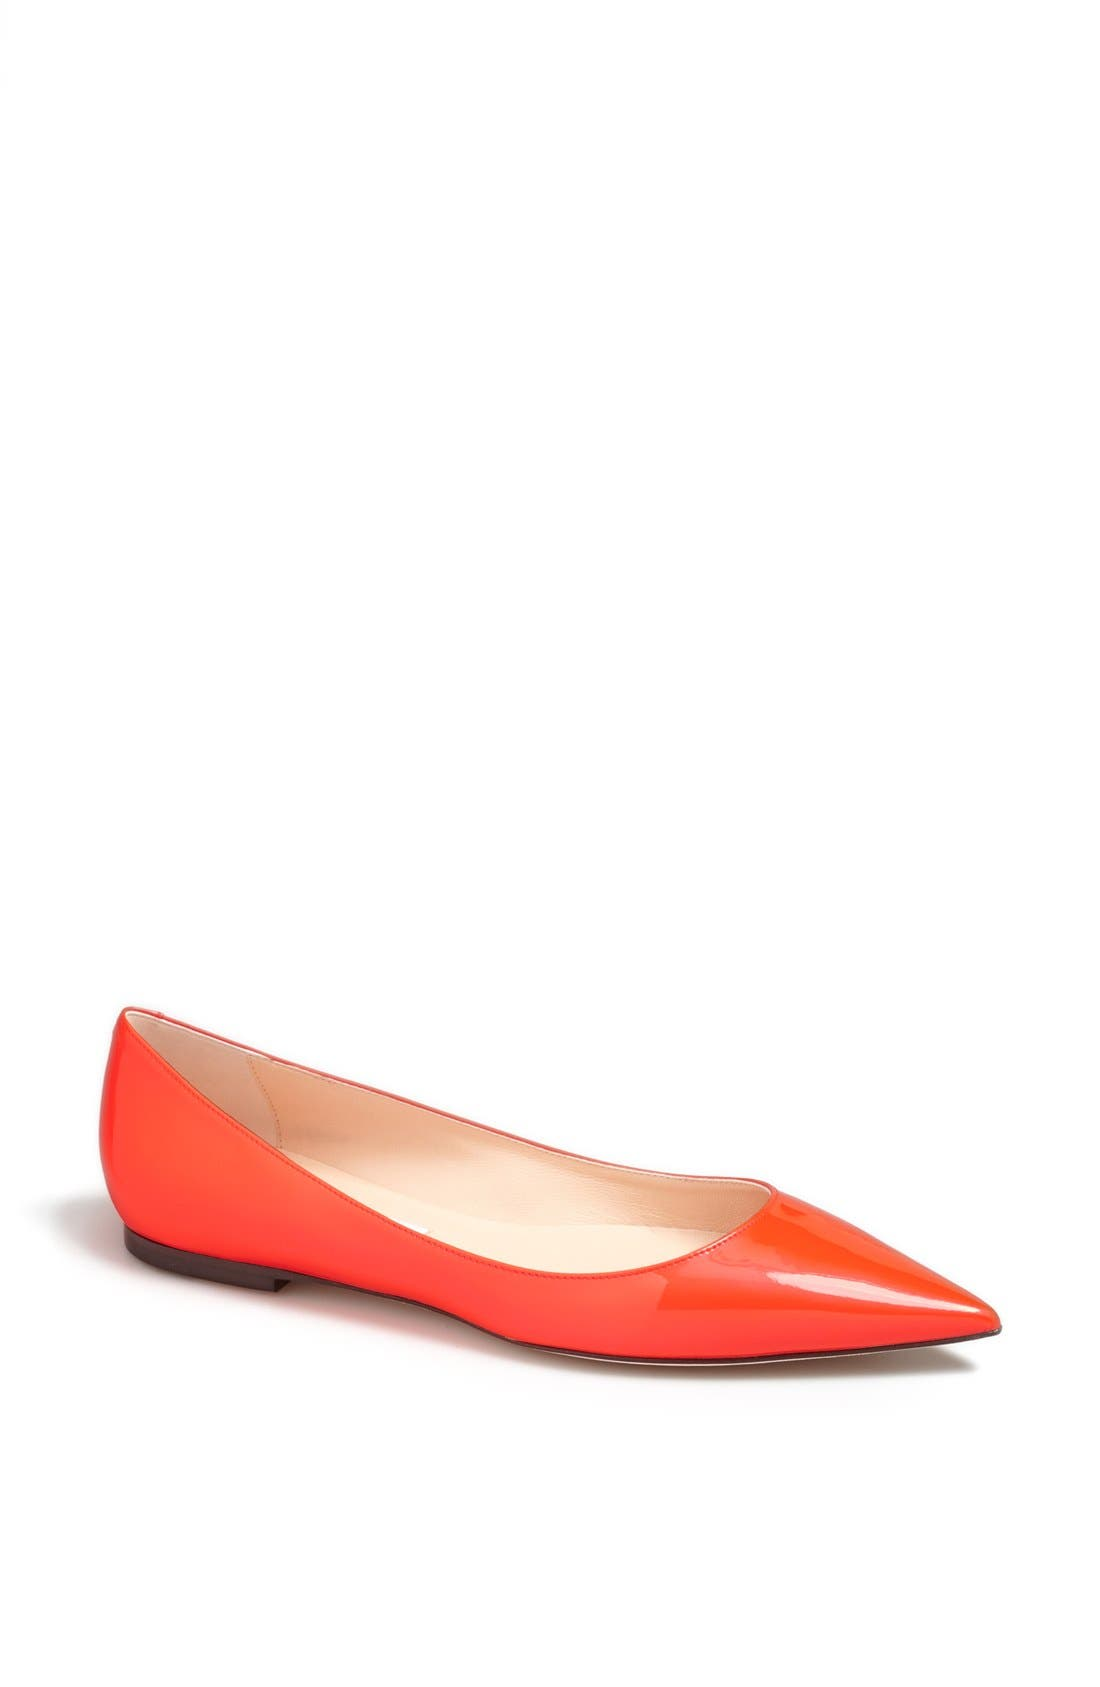 Main Image - Jimmy Choo 'Alina' Pointy Toe Flat